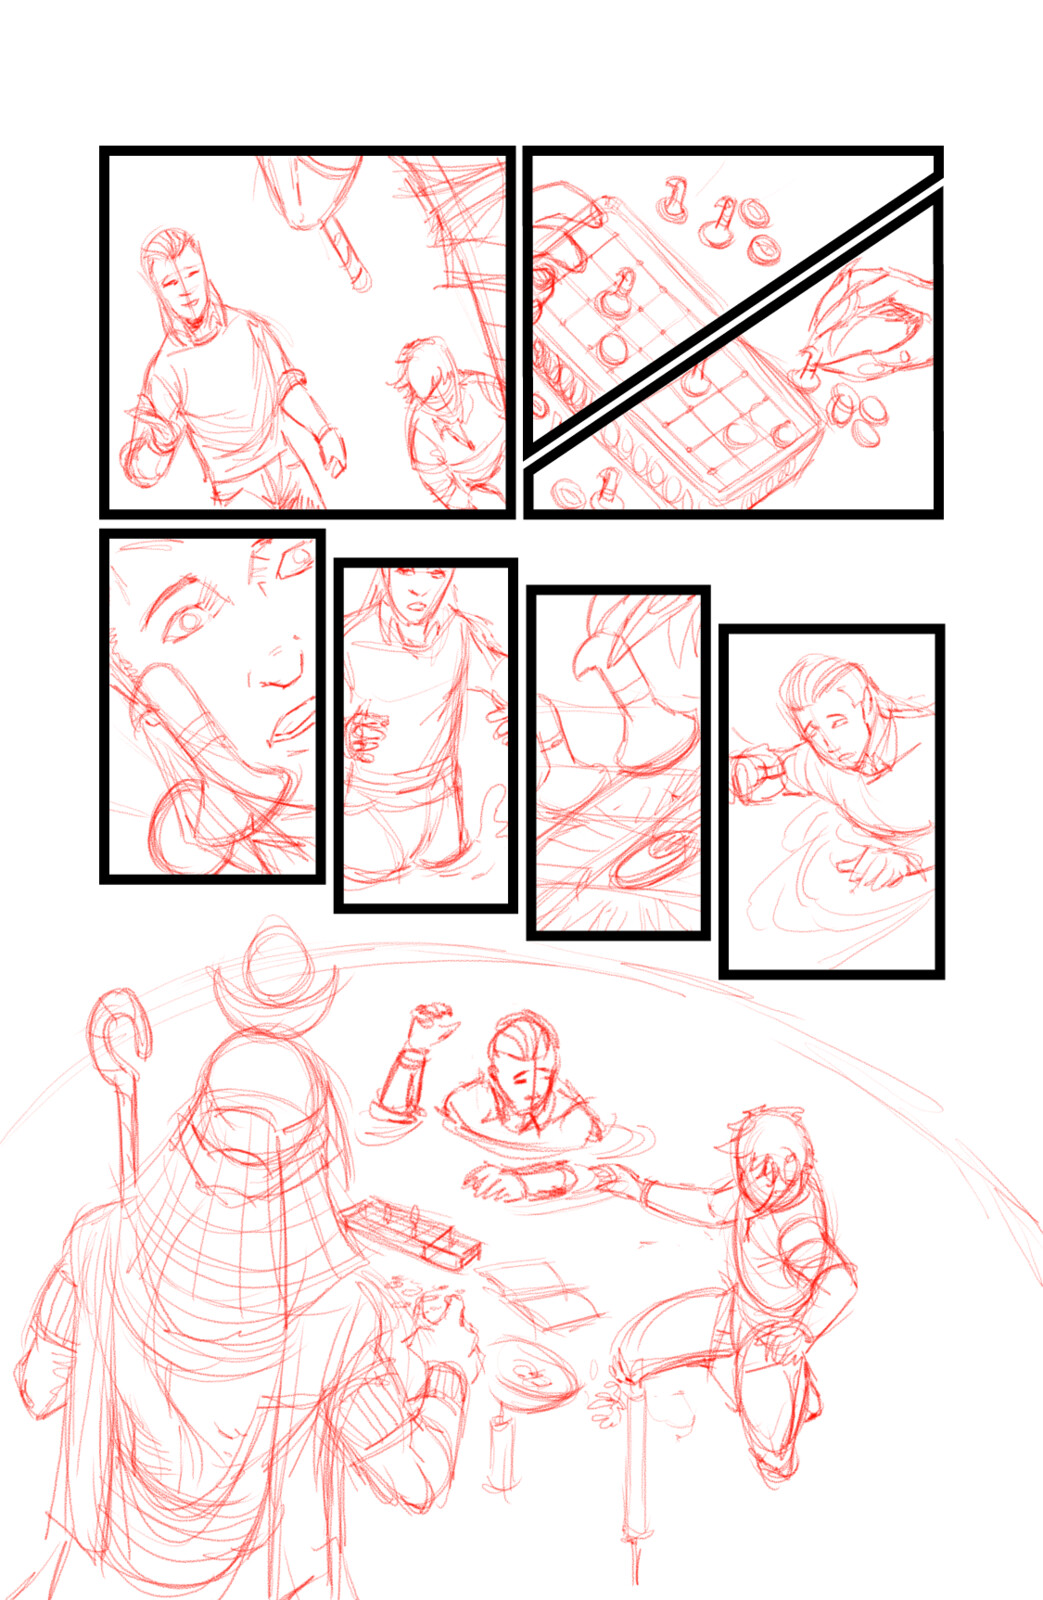 Book of Thoth Page 4 Penciled